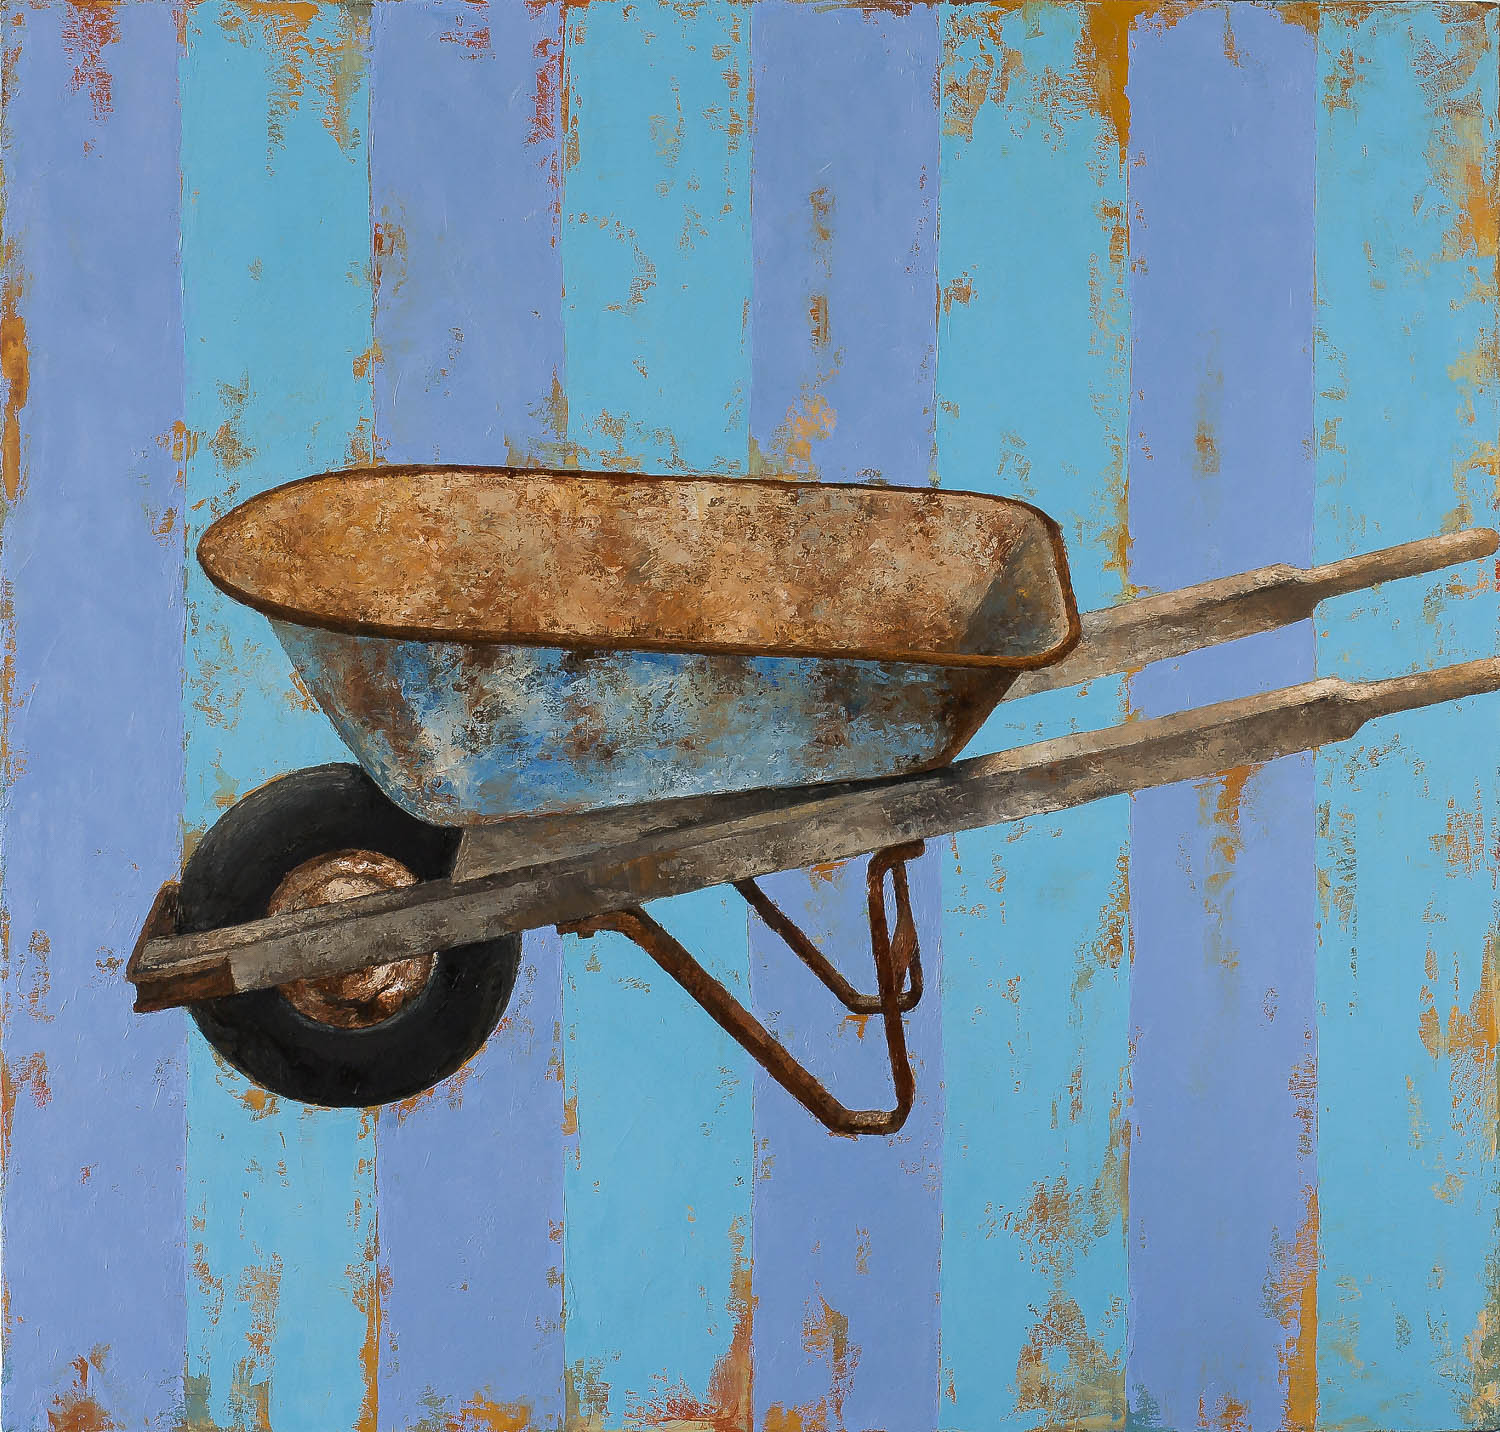 Kentucky Wheelbarrow  2009 oil on canvas 42 x 44 inches  Private collection